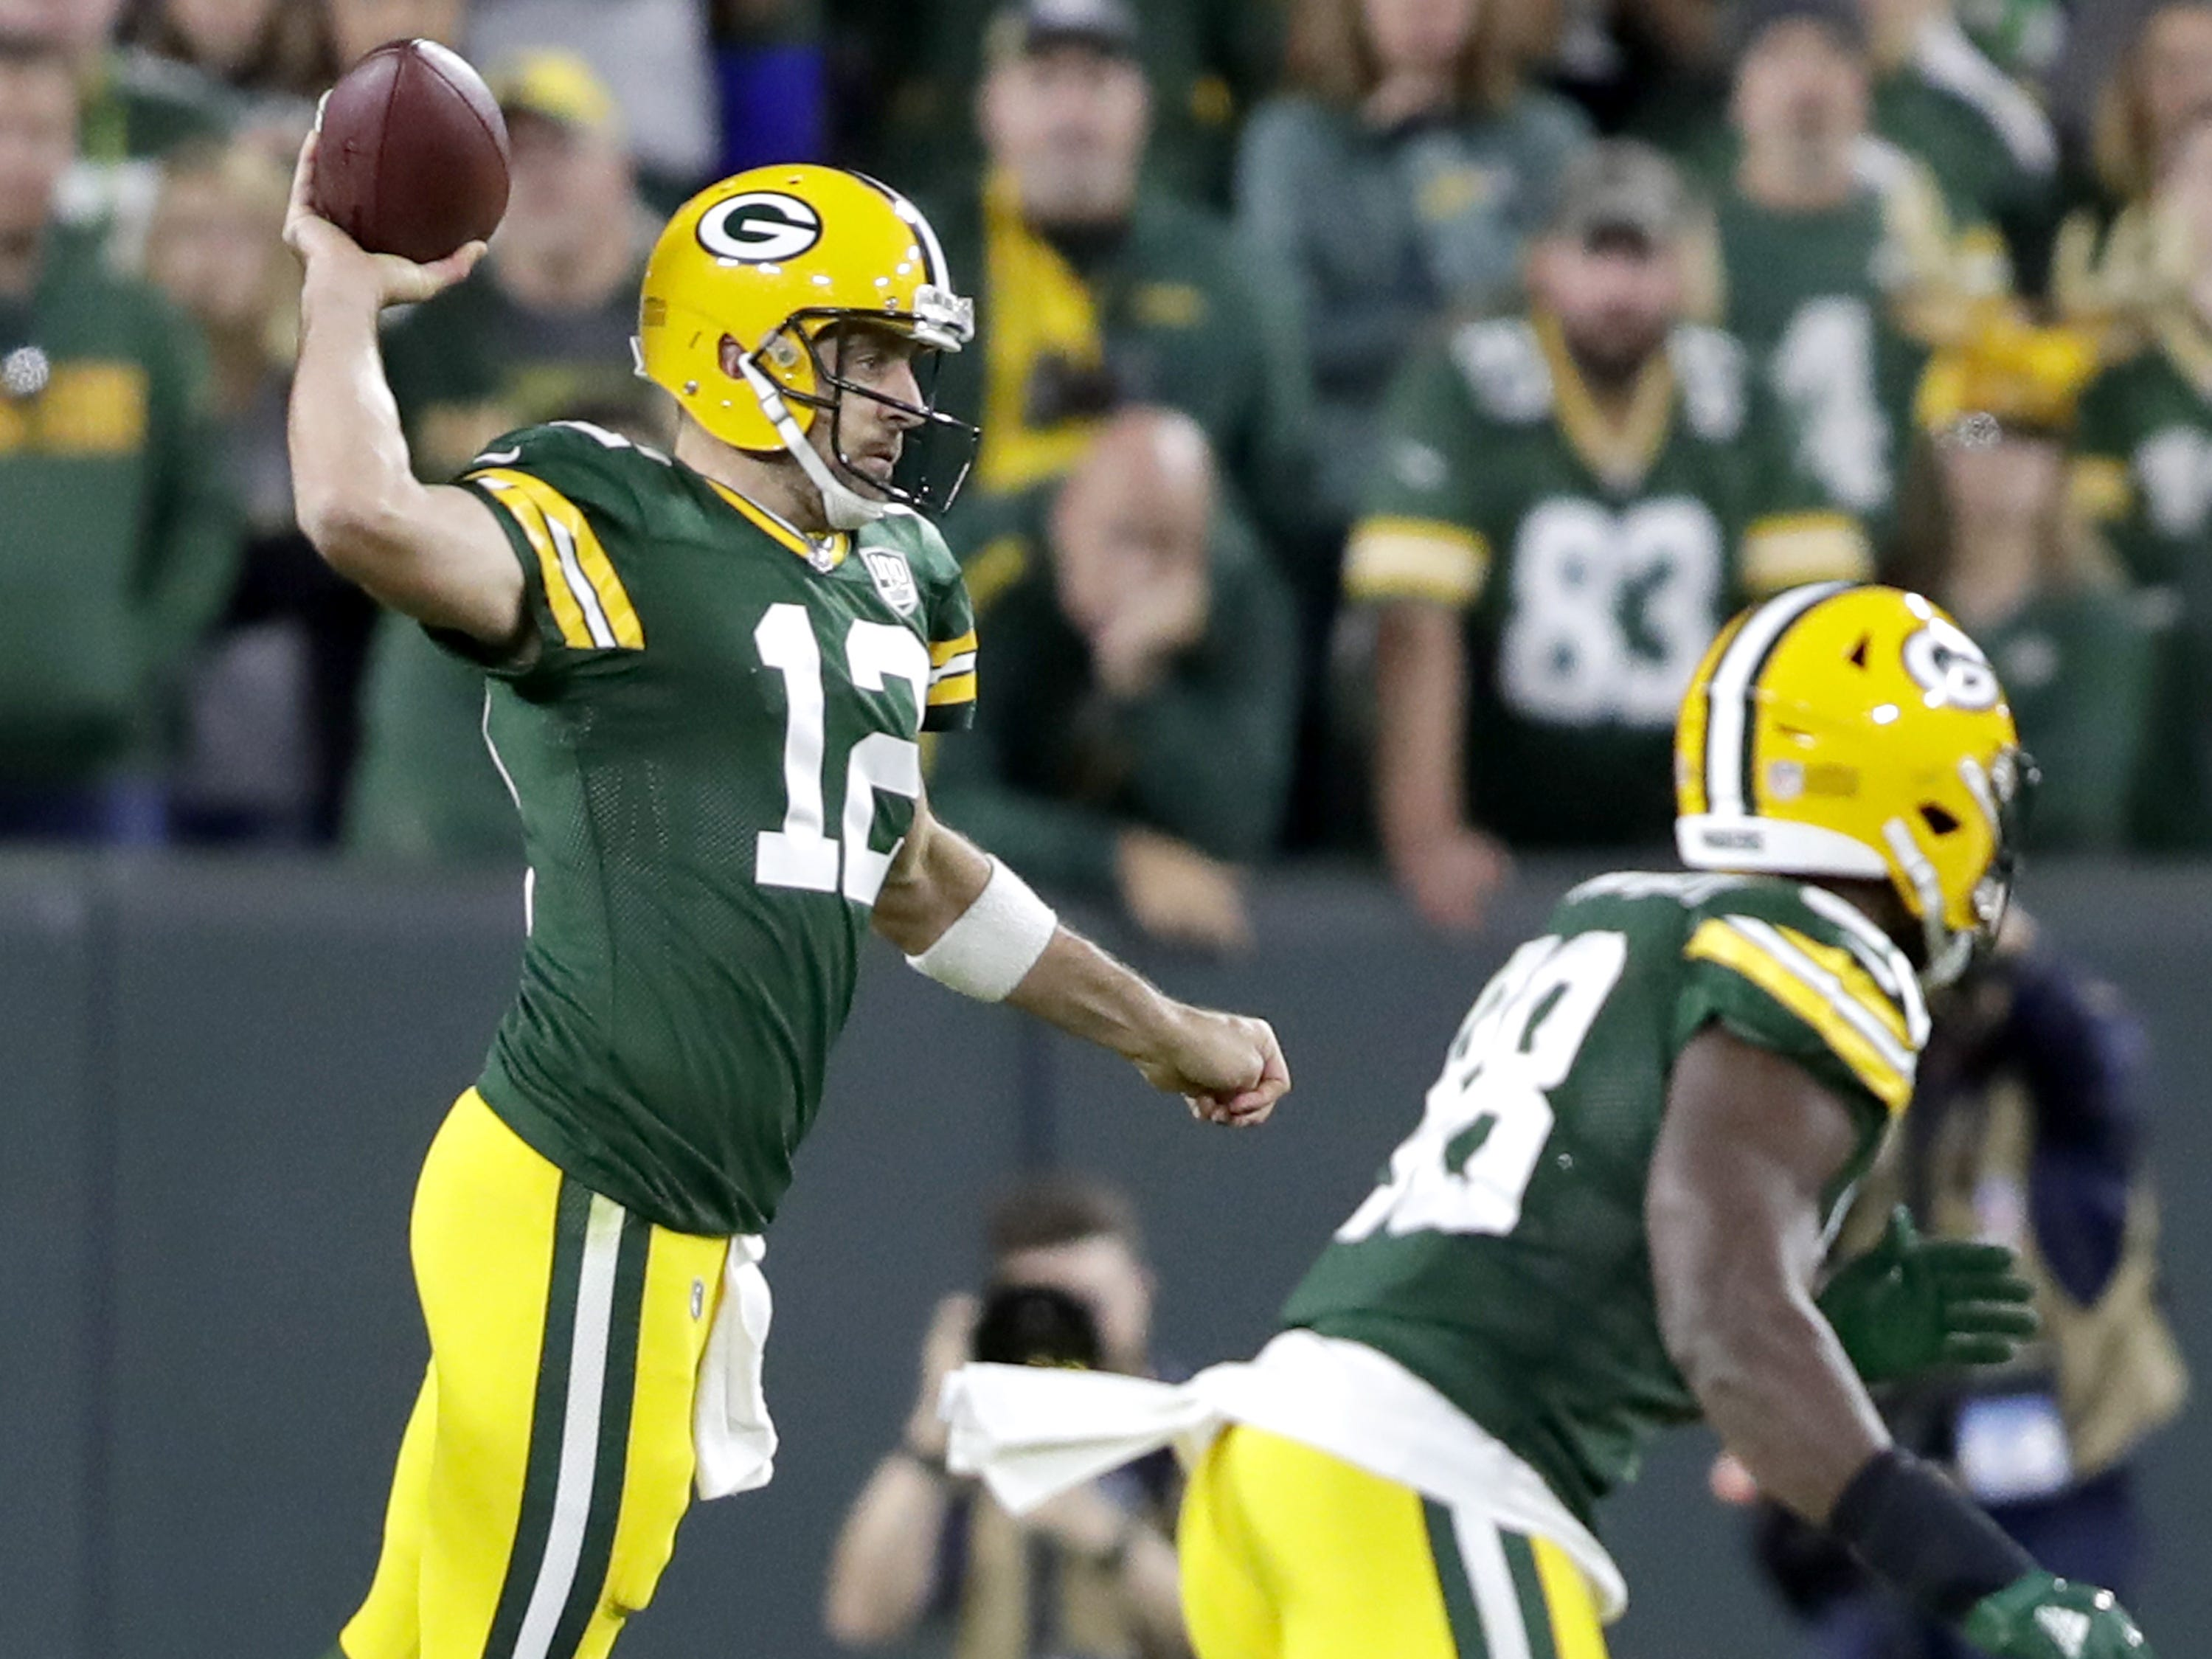 Green Bay Packers' Aaron Rodgers throws in the scond half against the Chicago Bears in the season opener on Sunday, September 9, 2018, at Lambeau Field in Green Bay, Wis. The Packers defeated the Bears 24 to 23.